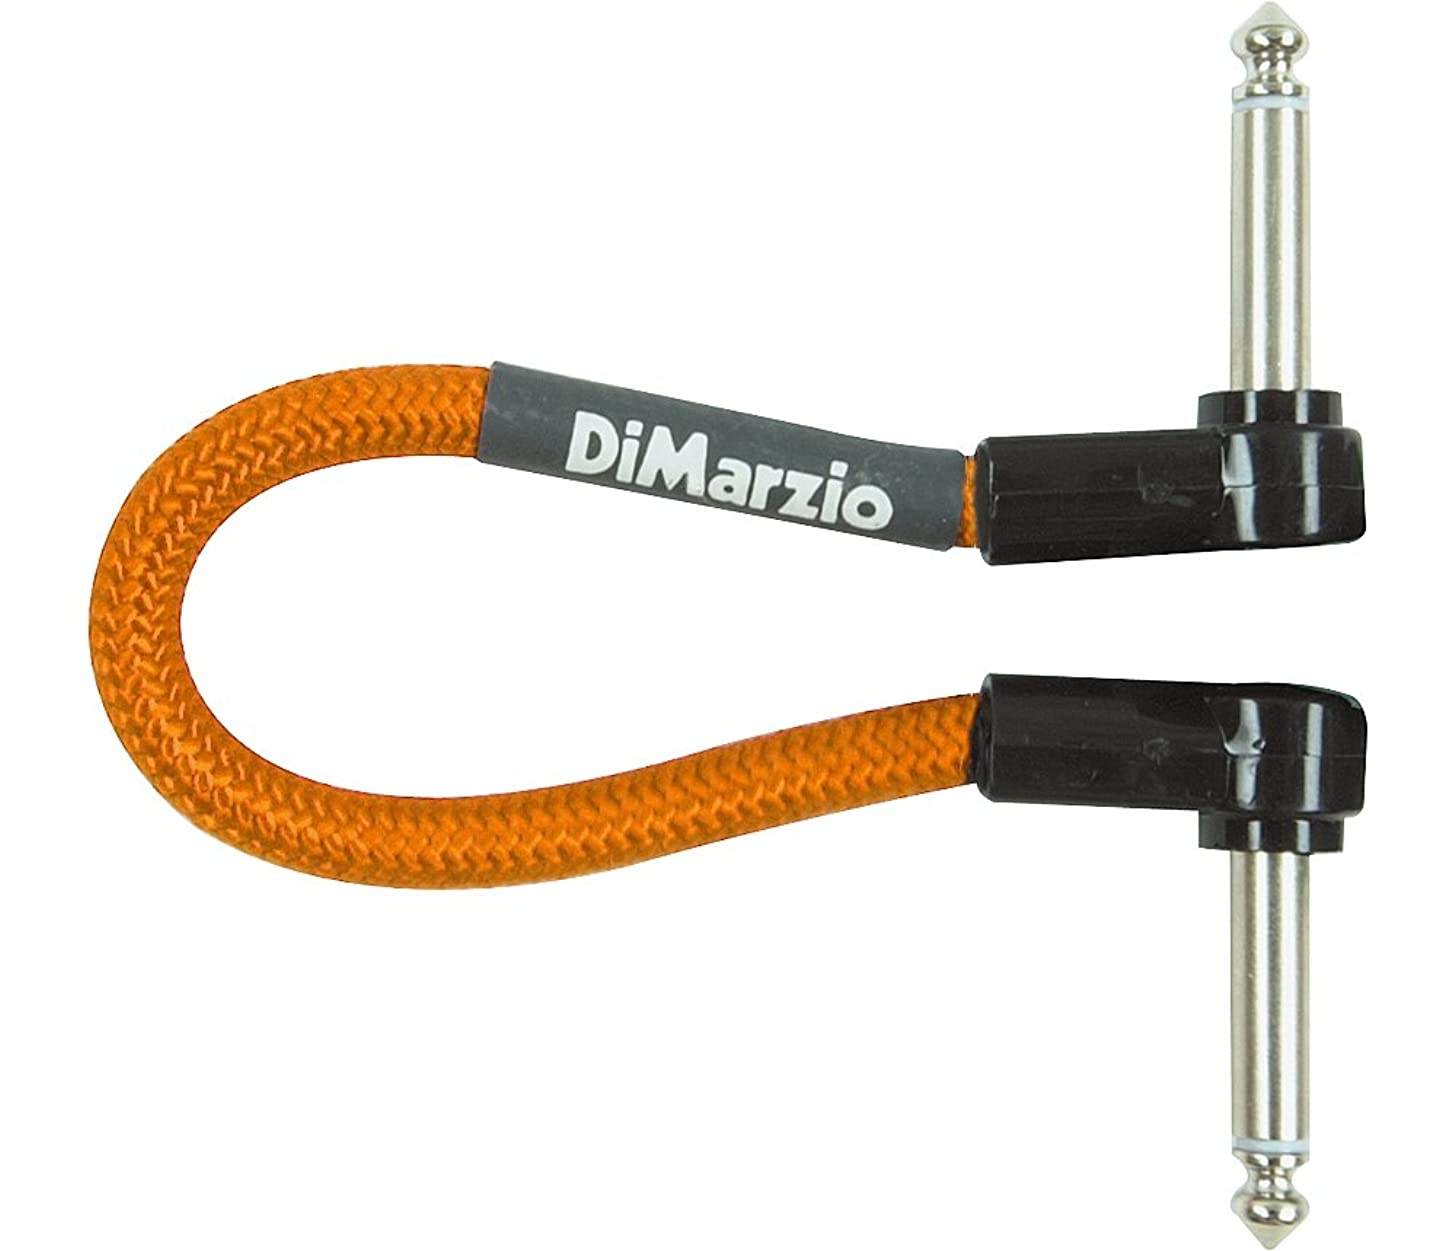 DiMarzio Neon Overbraid Jumper Cable Pedal Coupler Orange 6 in.